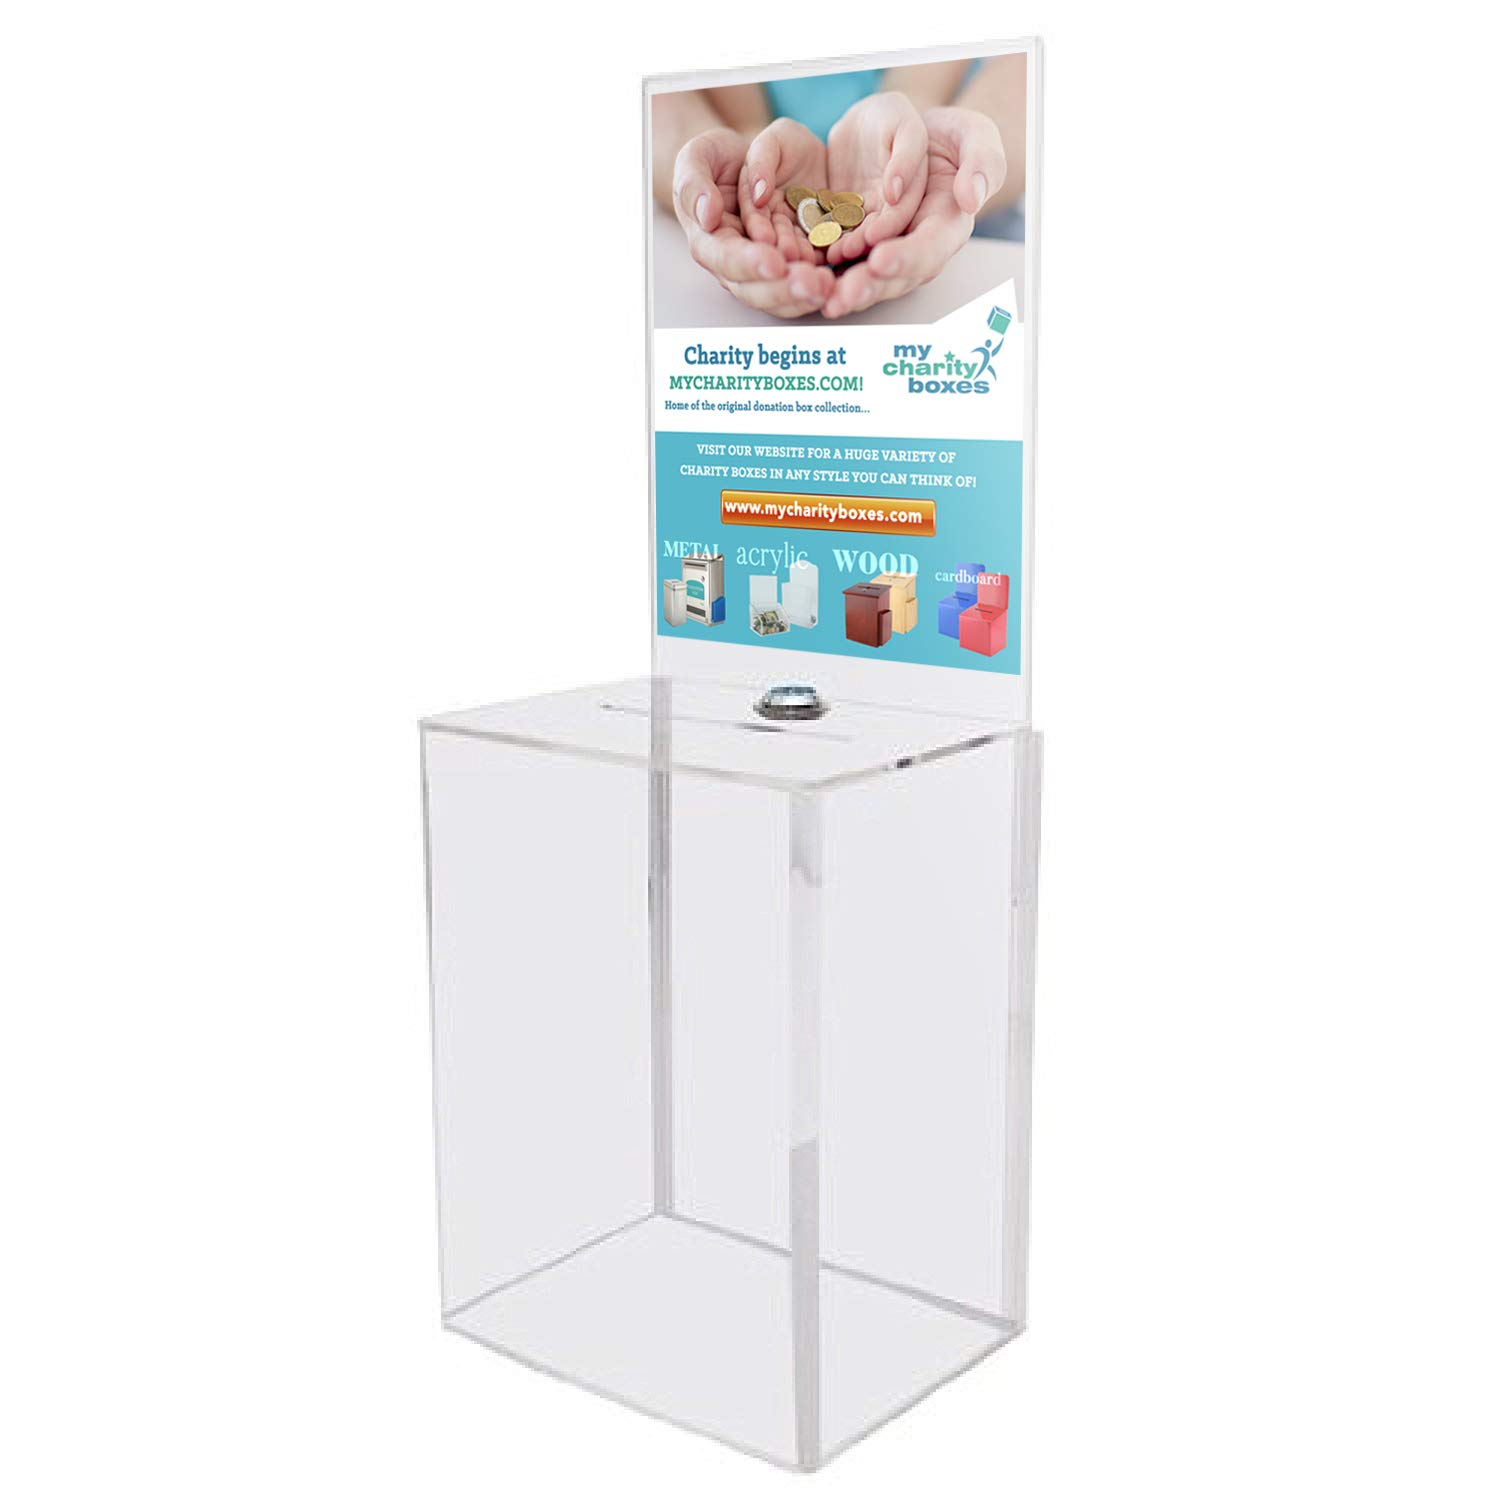 My Charity Boxes - Large Donation Box - Ballot Box - Suggestion Box - Acrylic Box - Tip Box- with Large Display Area by My Charity Boxes